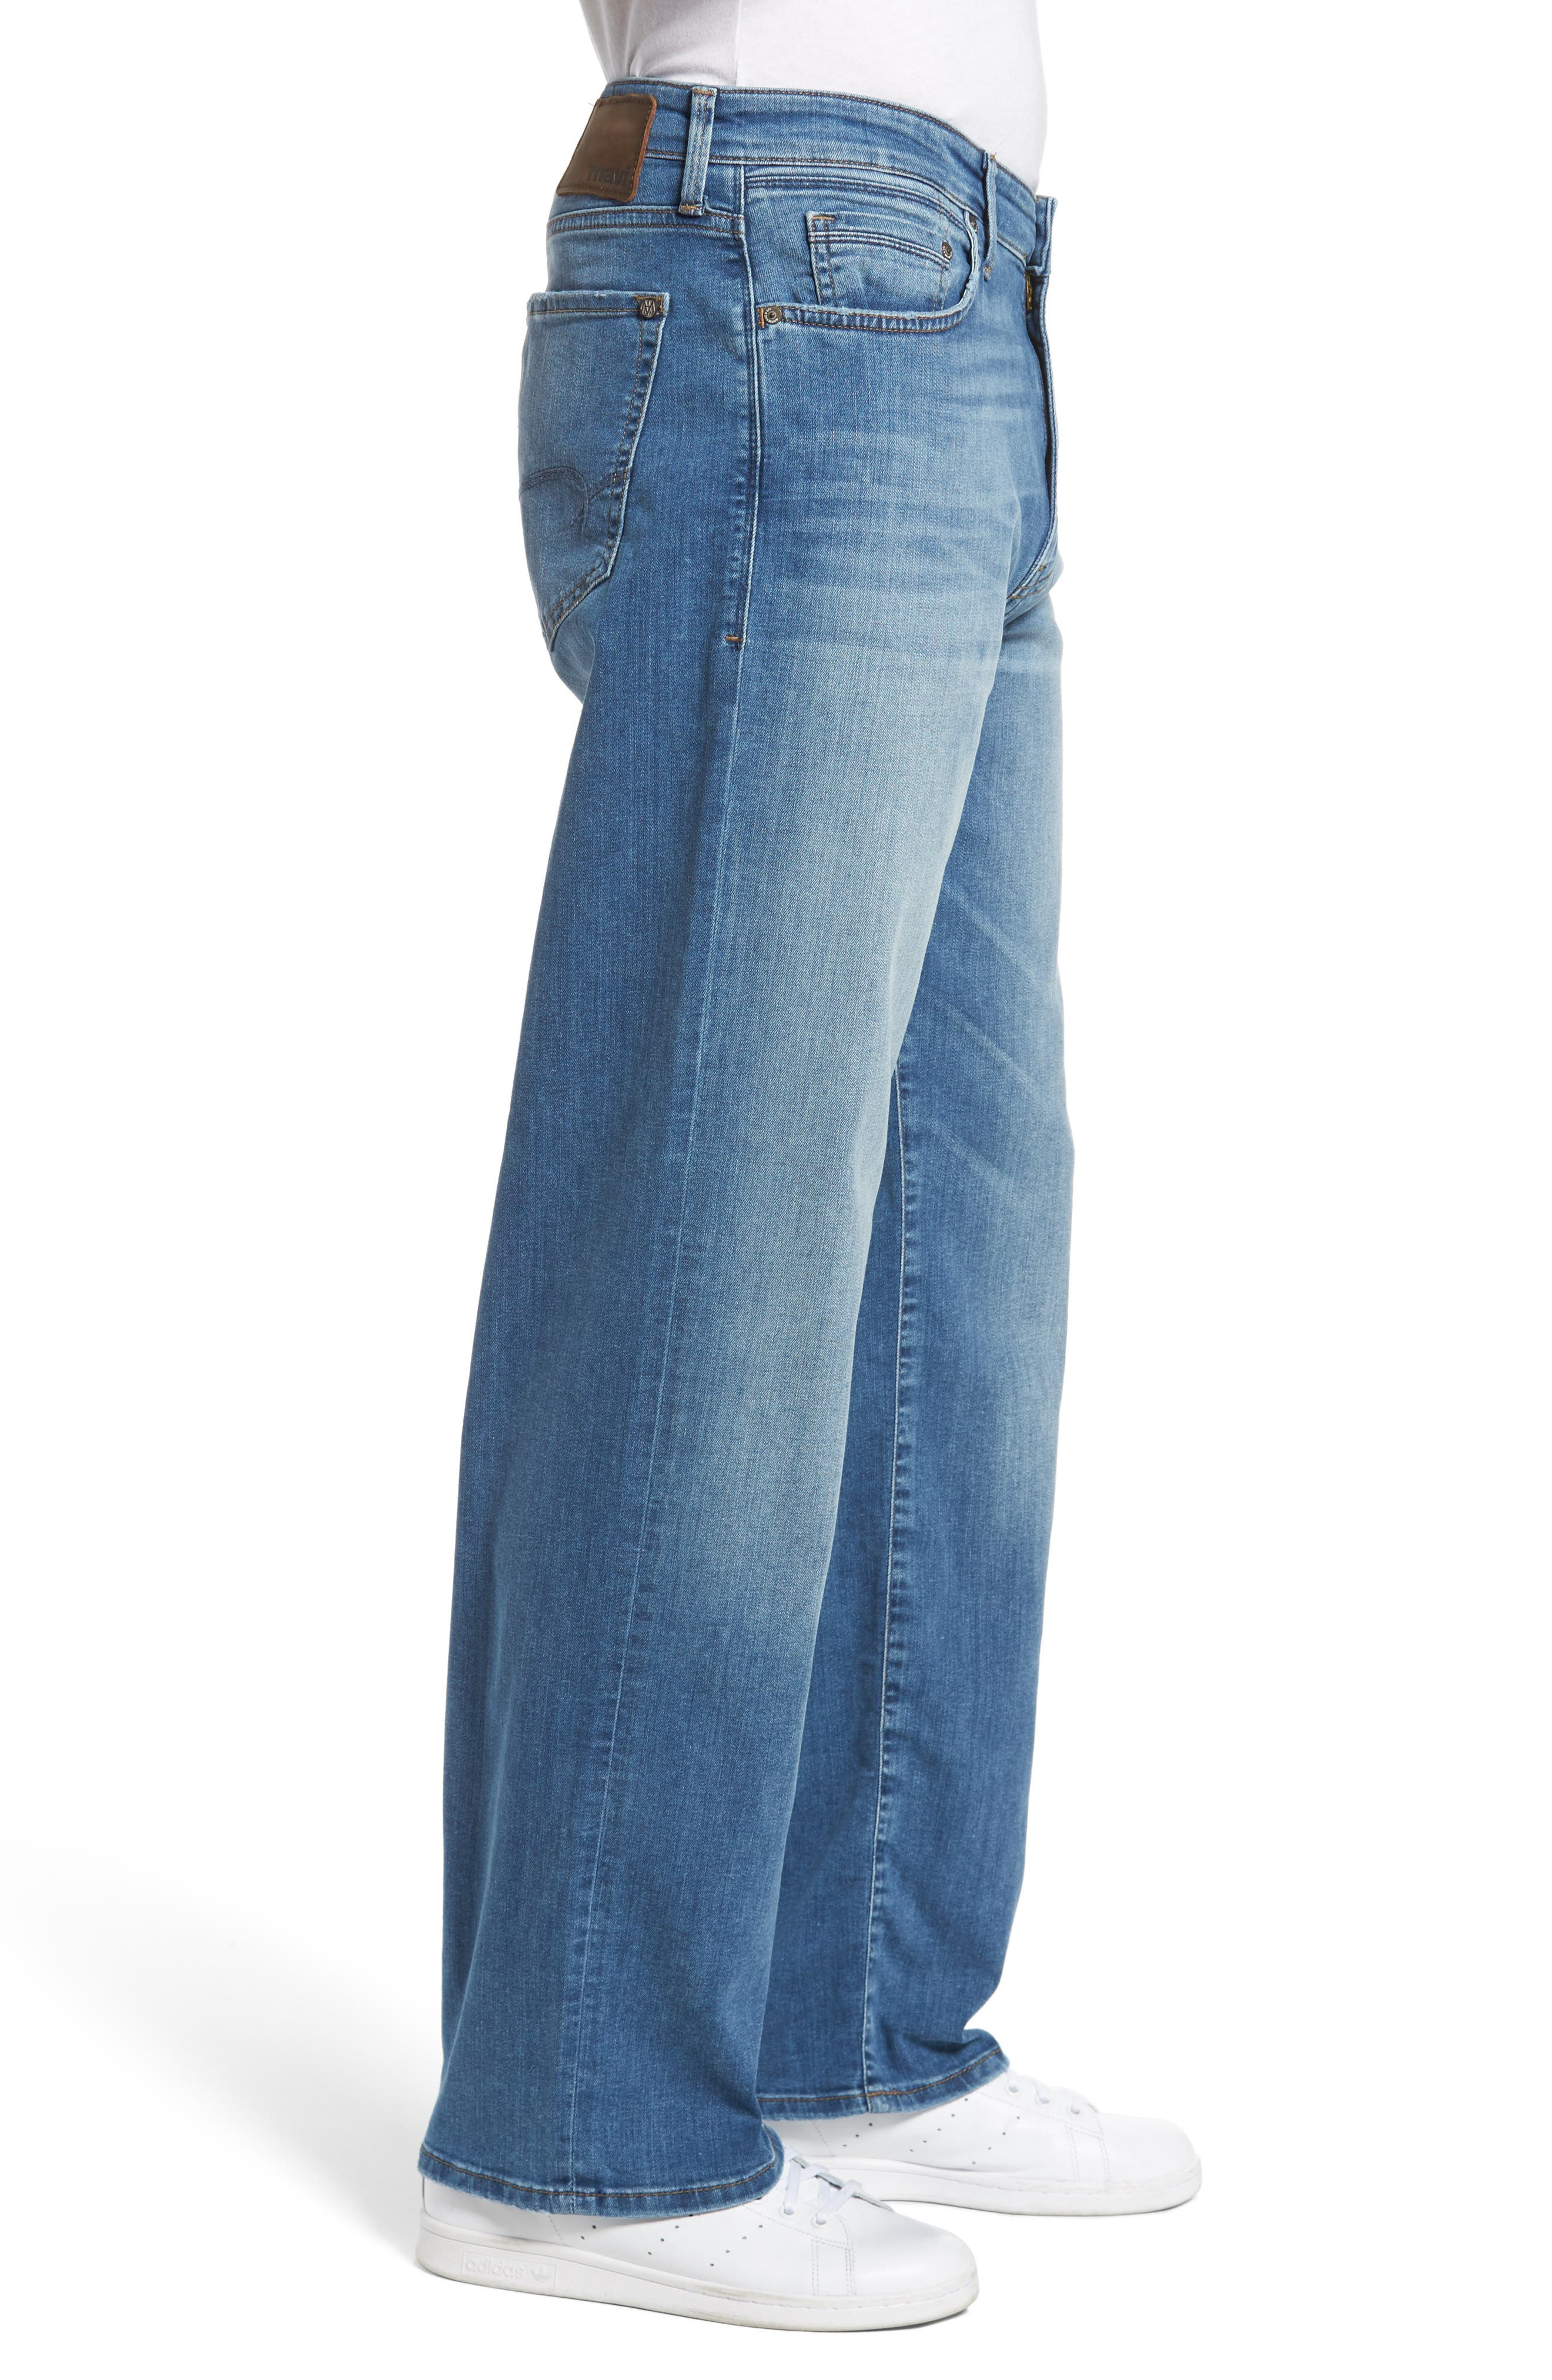 Max Relaxed Fit Jeans,                             Alternate thumbnail 3, color,                             Mid Indigo Williamsburg